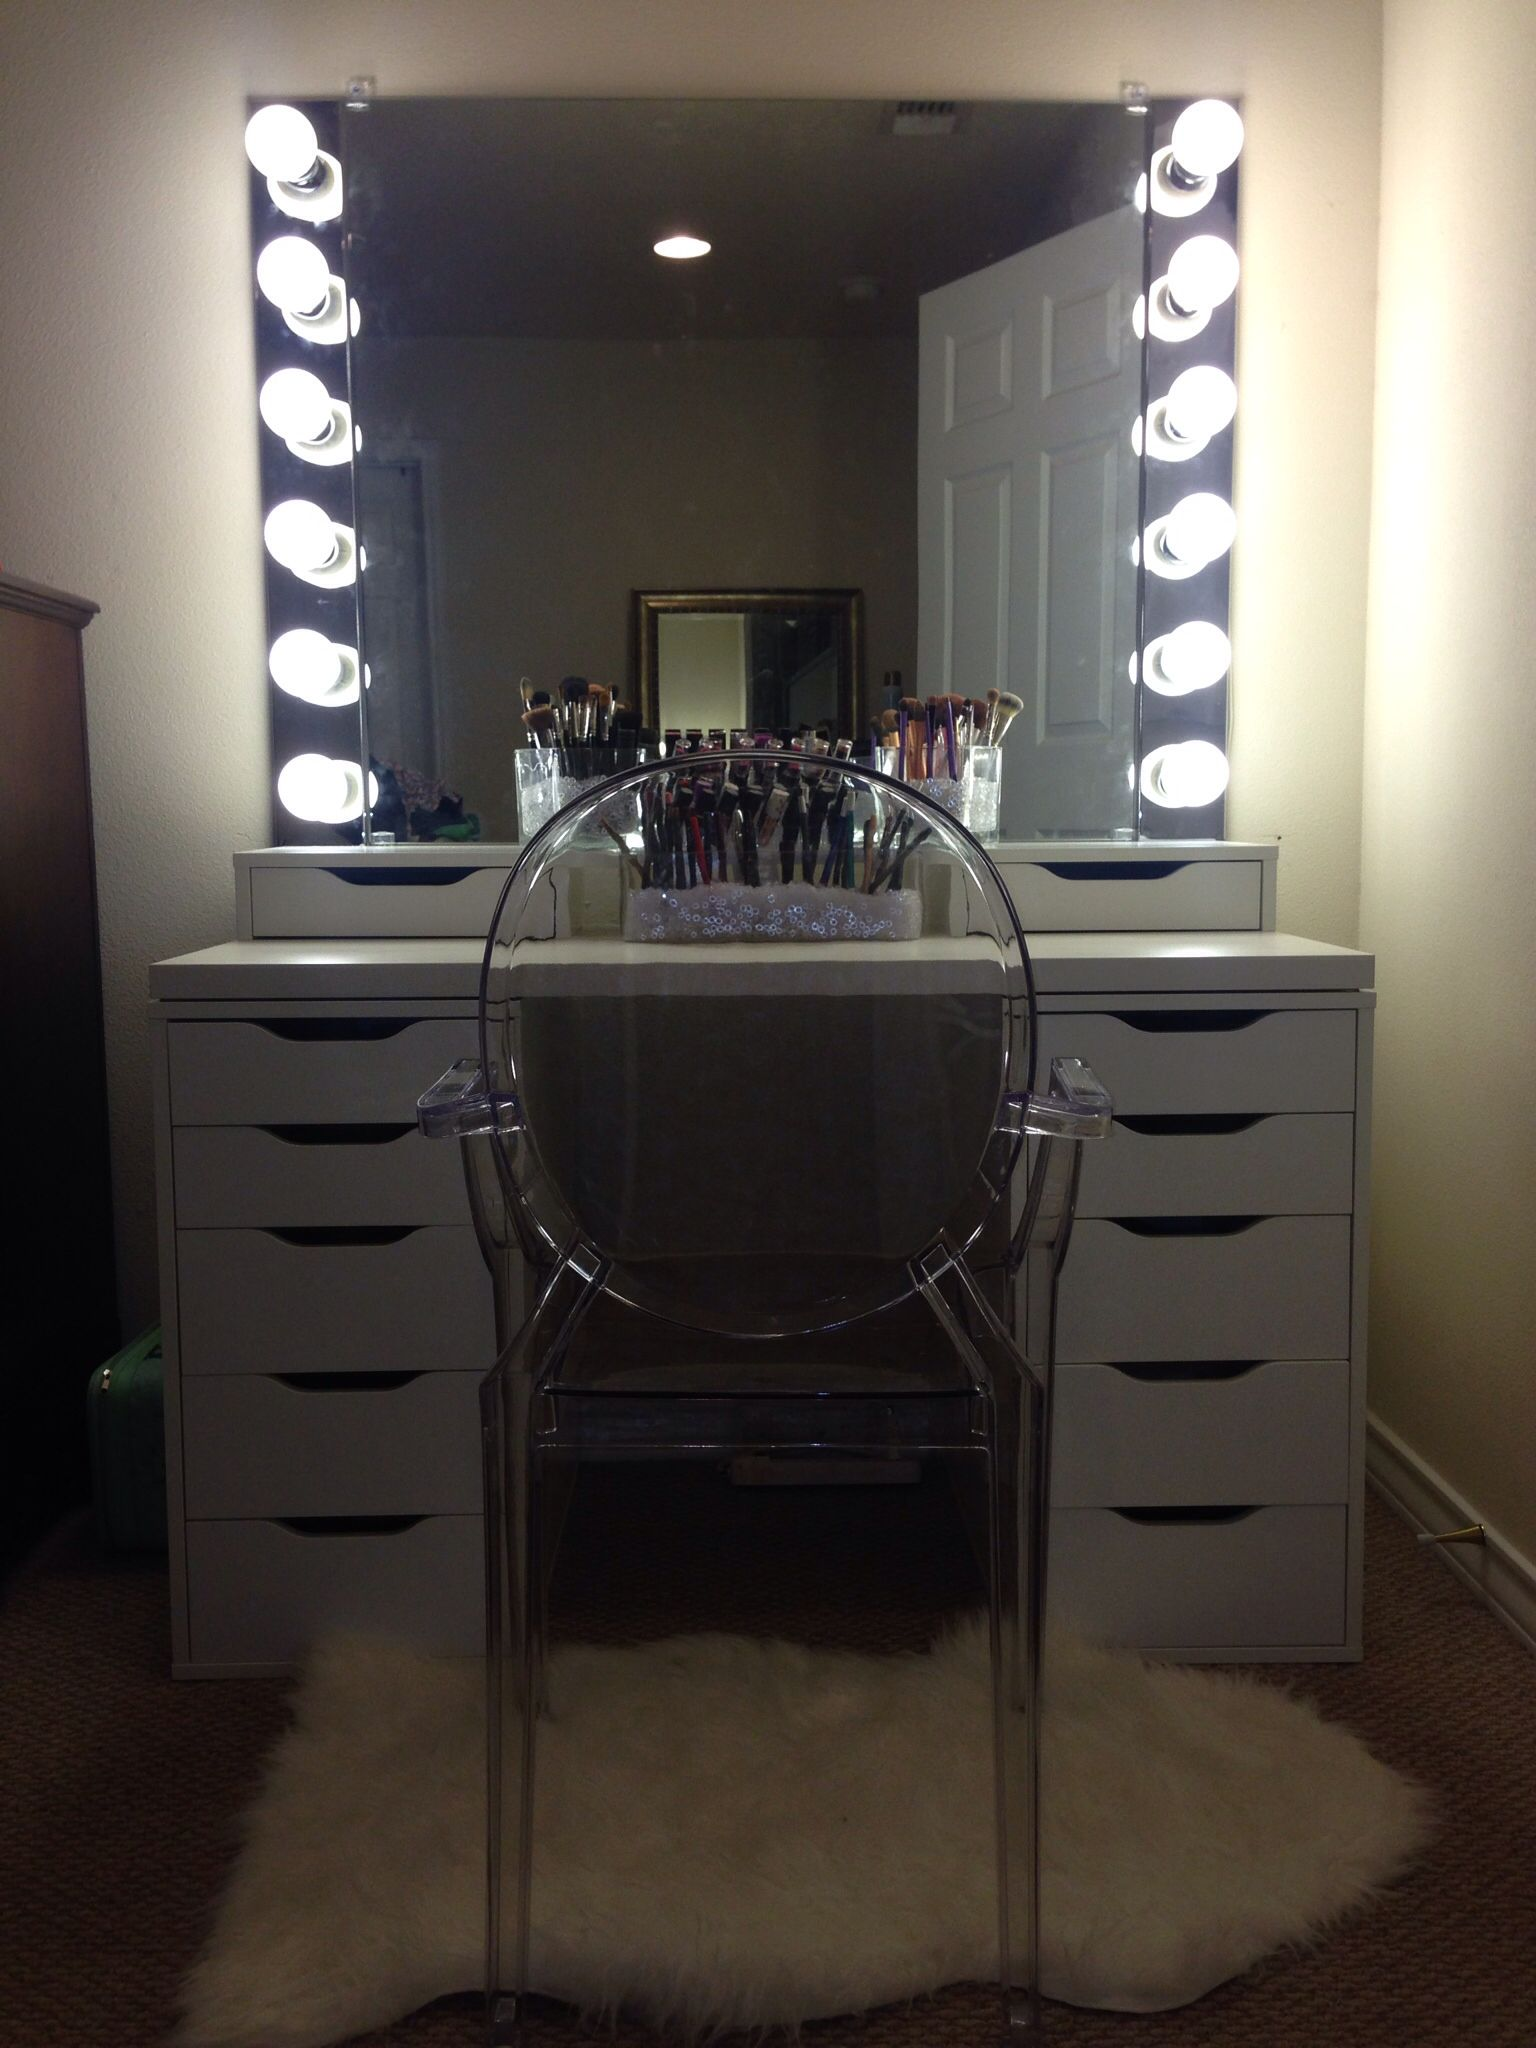 Vanity Table With Lighted Mirror Diy : DIY iKEA Vanity with lights! Beauty Pinterest Ikea vanity, Vanities and Lights